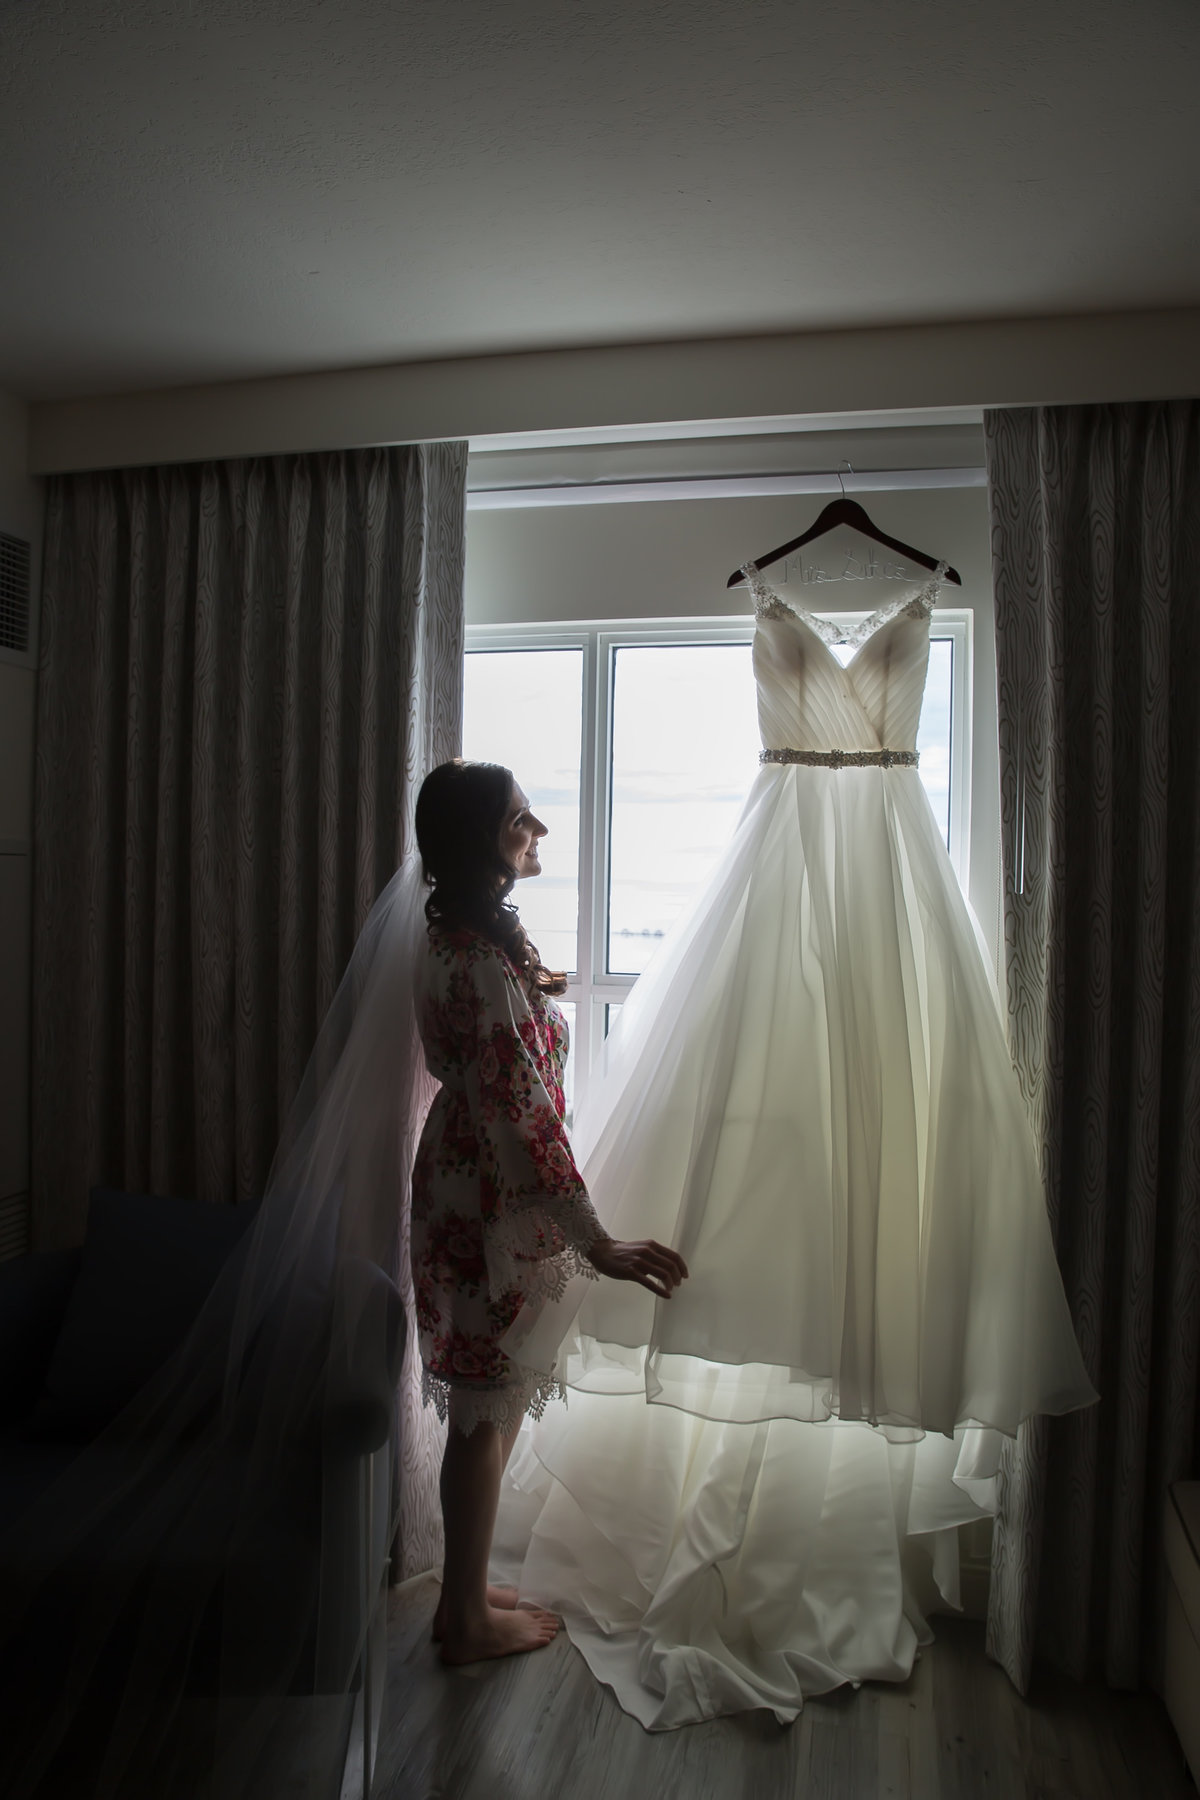 Bride looking at wedding dress in window on wedding day in Gulfport MS